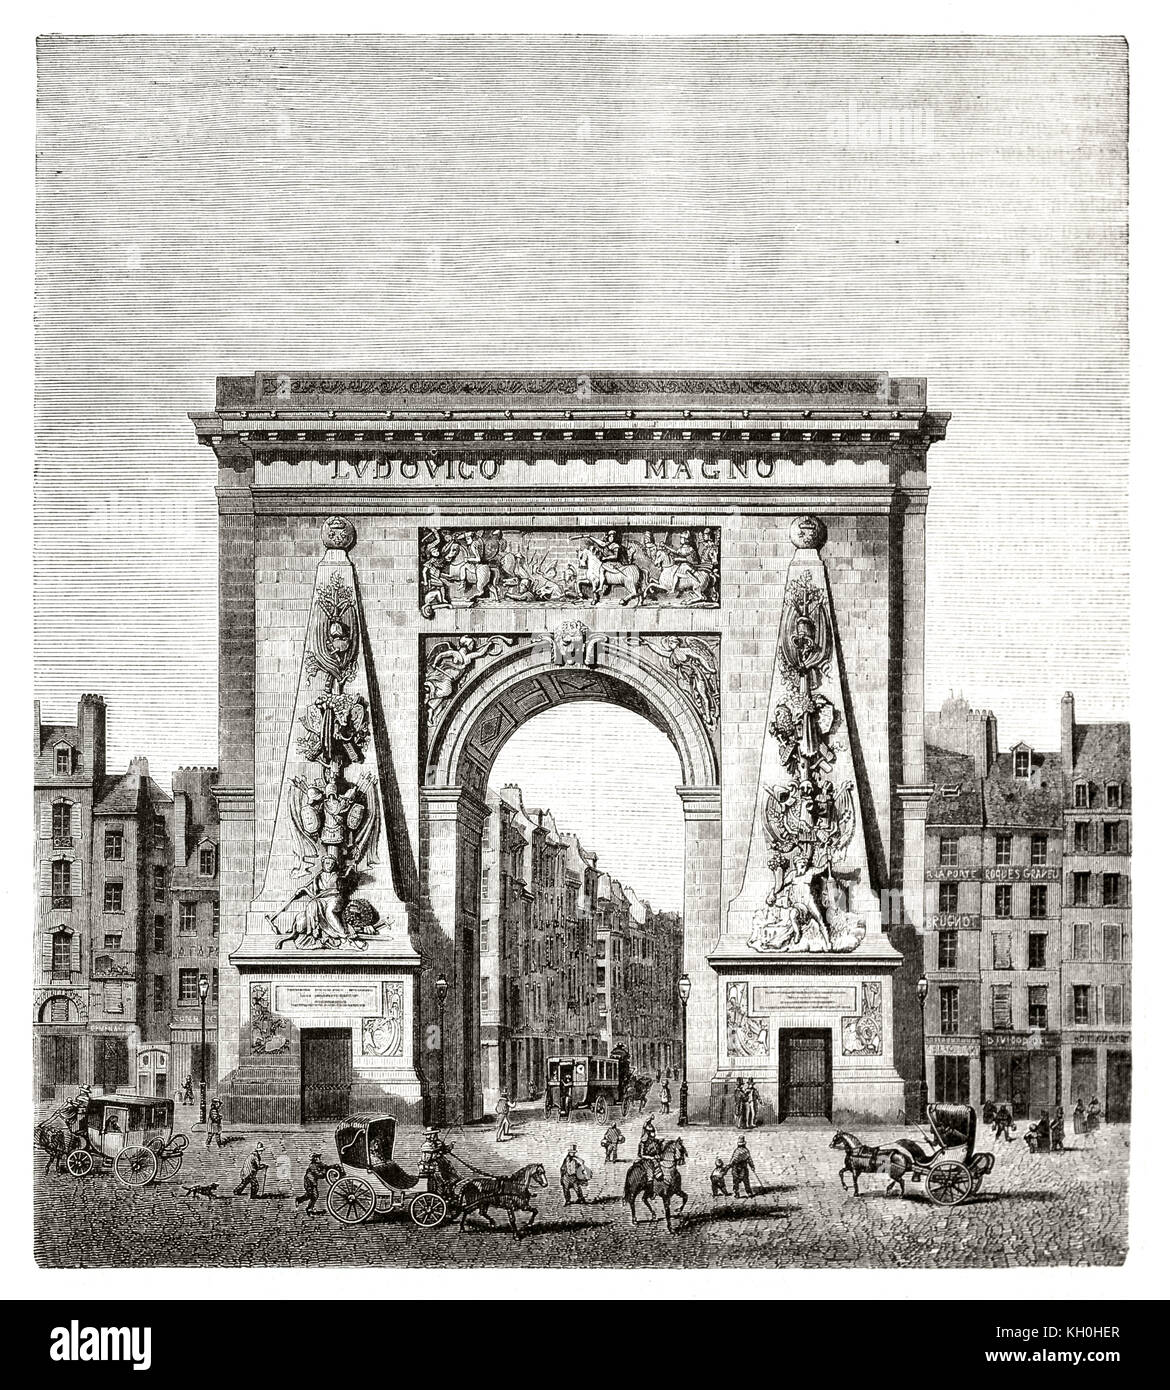 Old view of Porte Saint-Denis, Paris. By Blondel, publ. on Magasin Pittoresque, Paris, 1847 - Stock Image